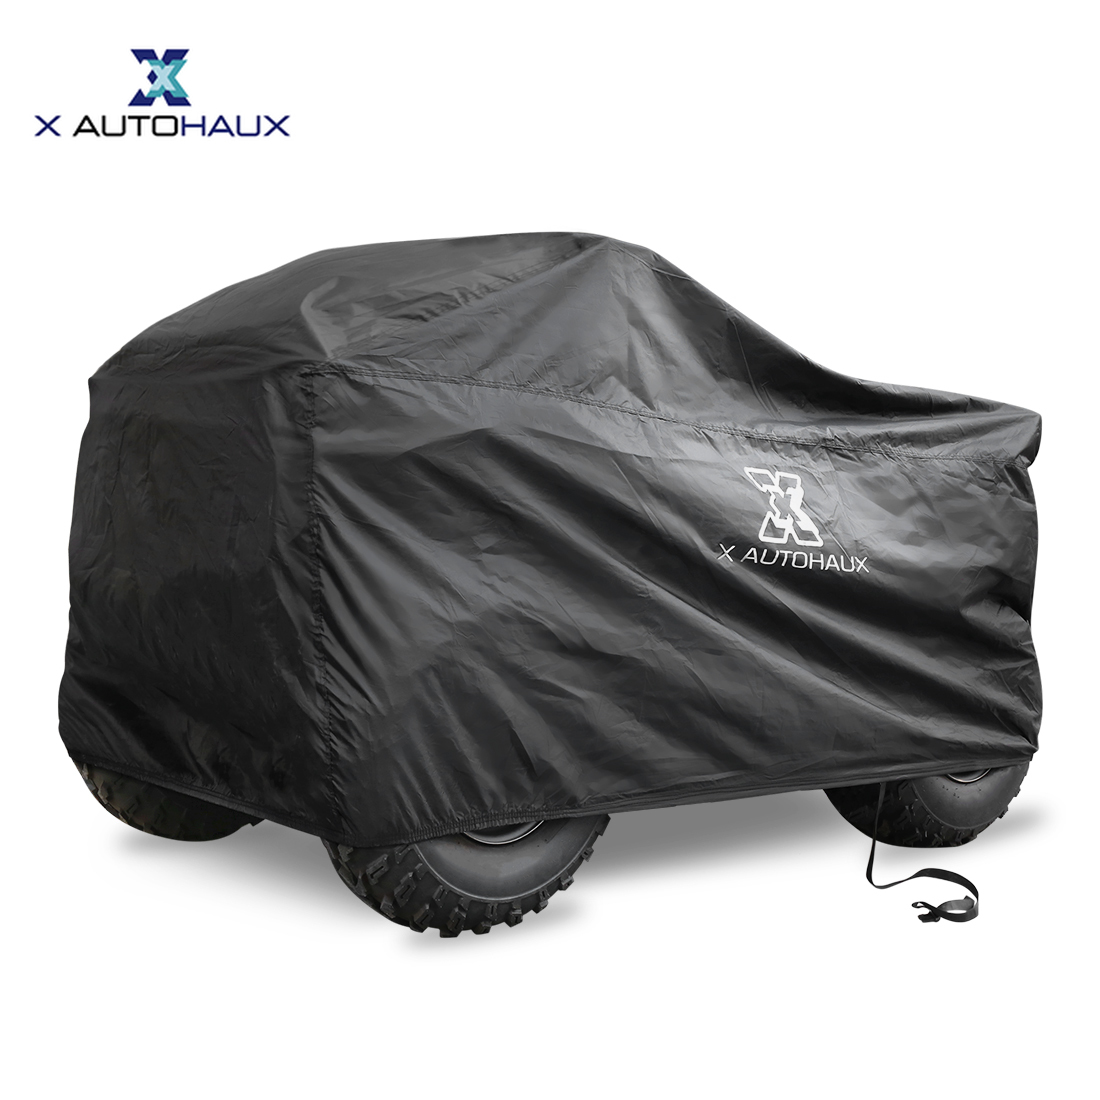 X AUTOHAUX 5 Sizes Quad ATV Cover Cover Waterproof Dust Snow Anti-UV Protector Universal Motorcycle Vehicle Scooter Covers